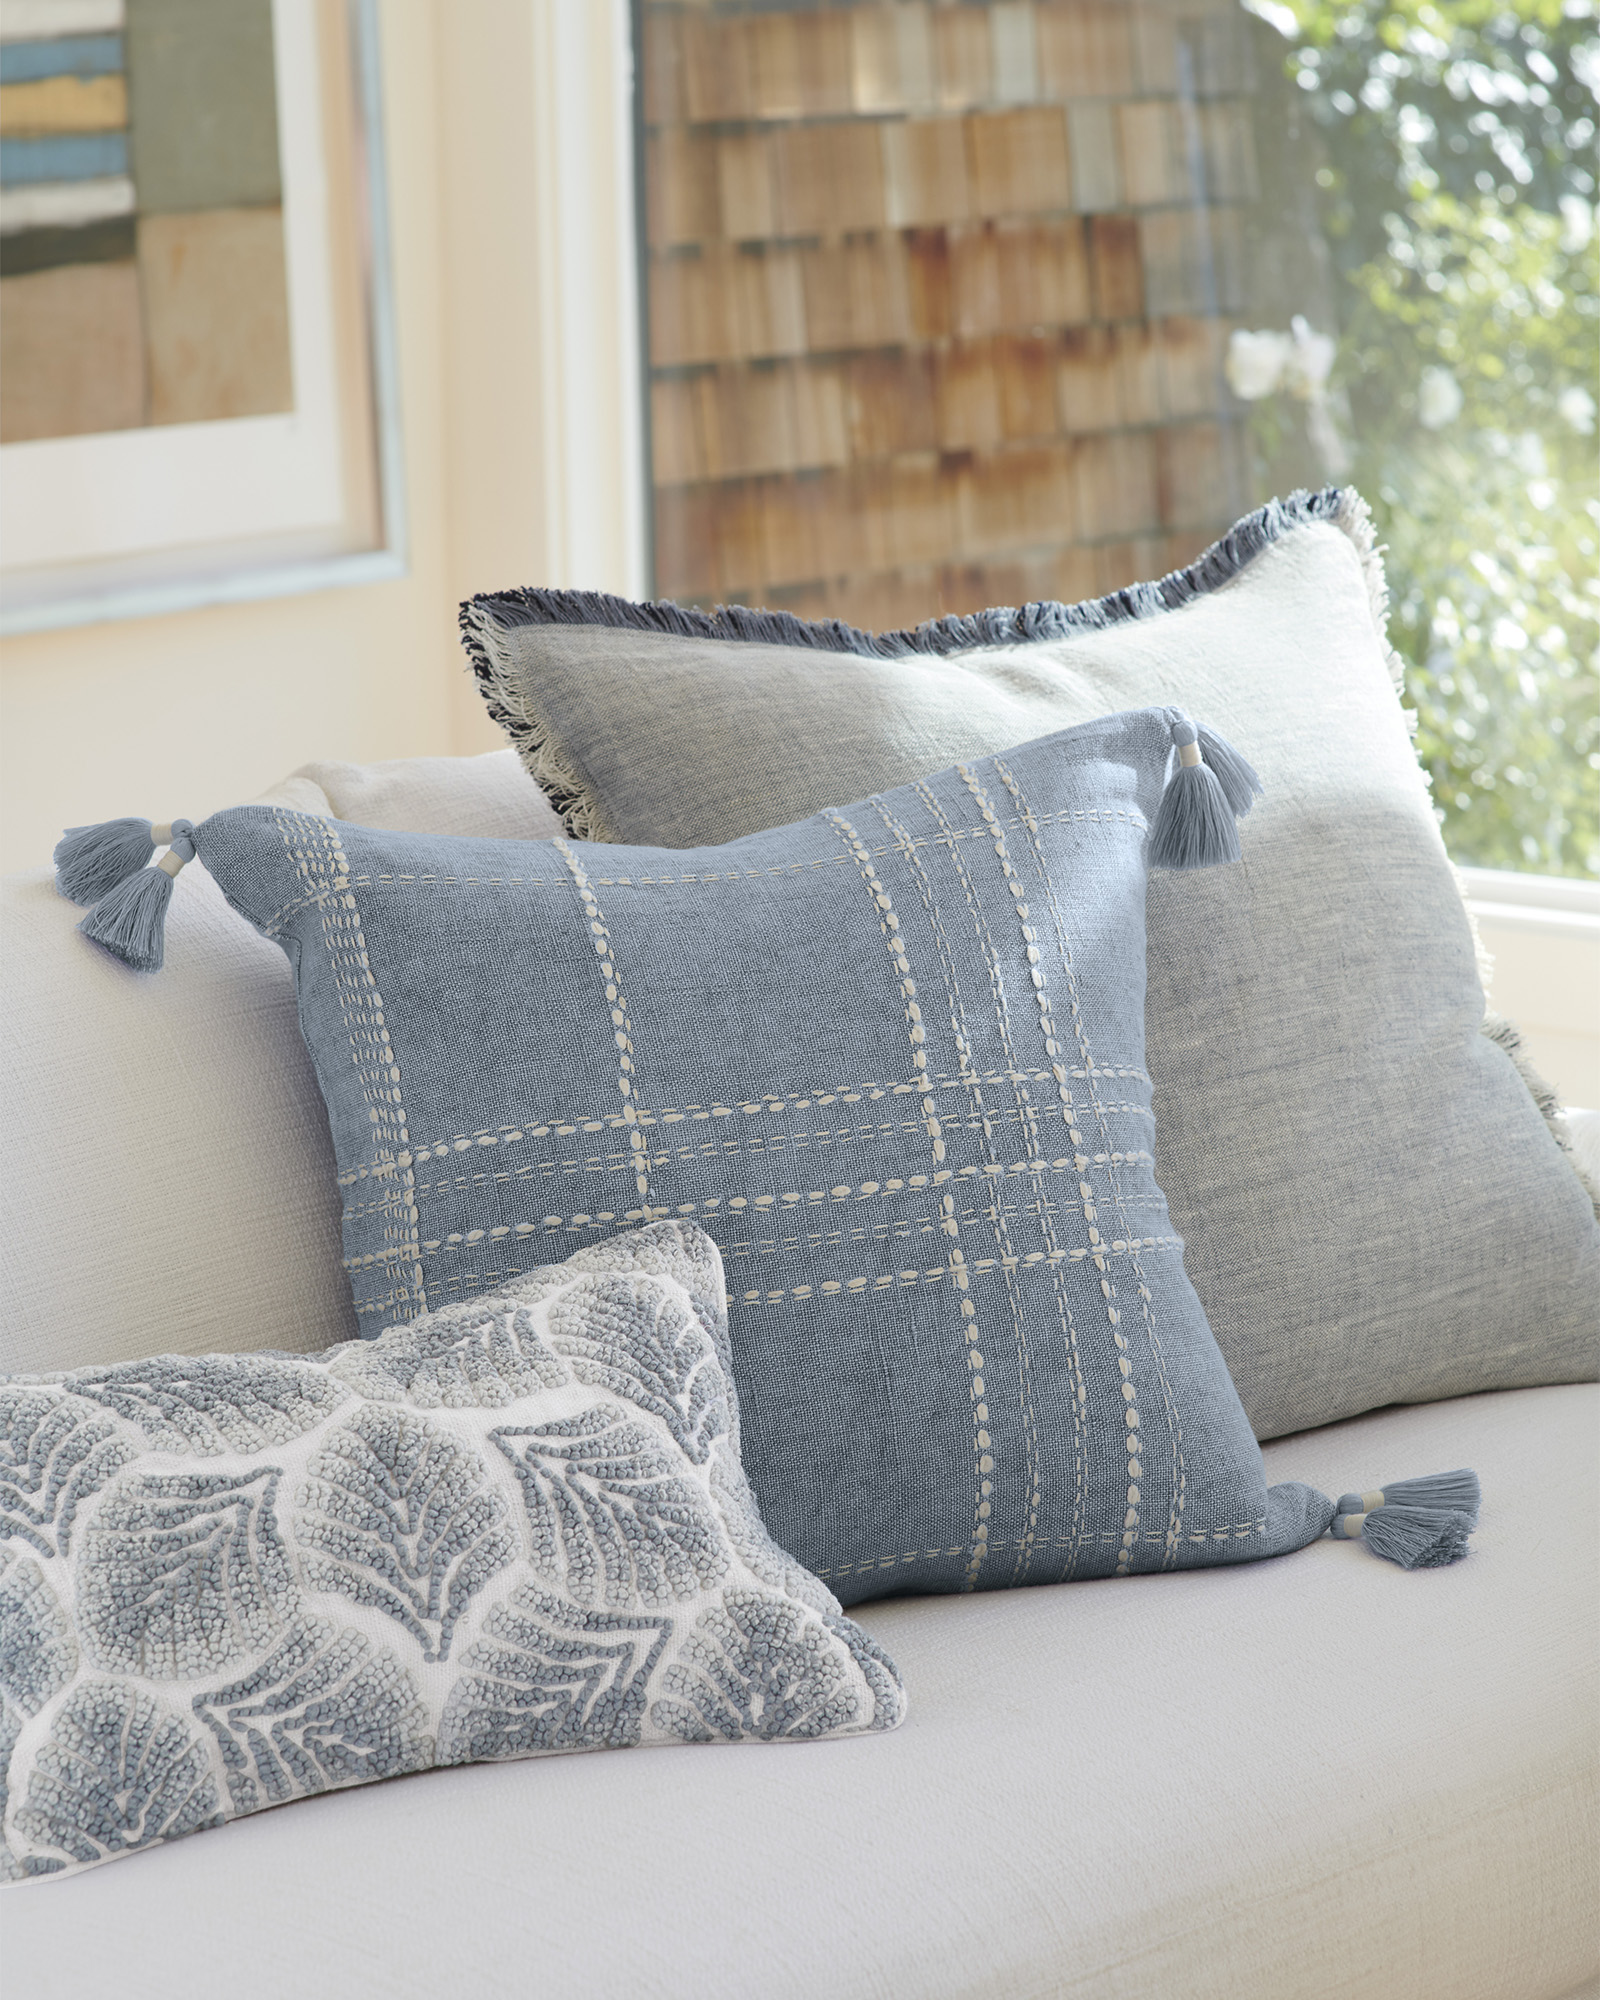 Avalis Pillow cover, Serena & Lily.  French Farmhouse Decor on Fixer Upper Get the Look The Club House Family Room with Shopping Resources as well as Design Ideas.